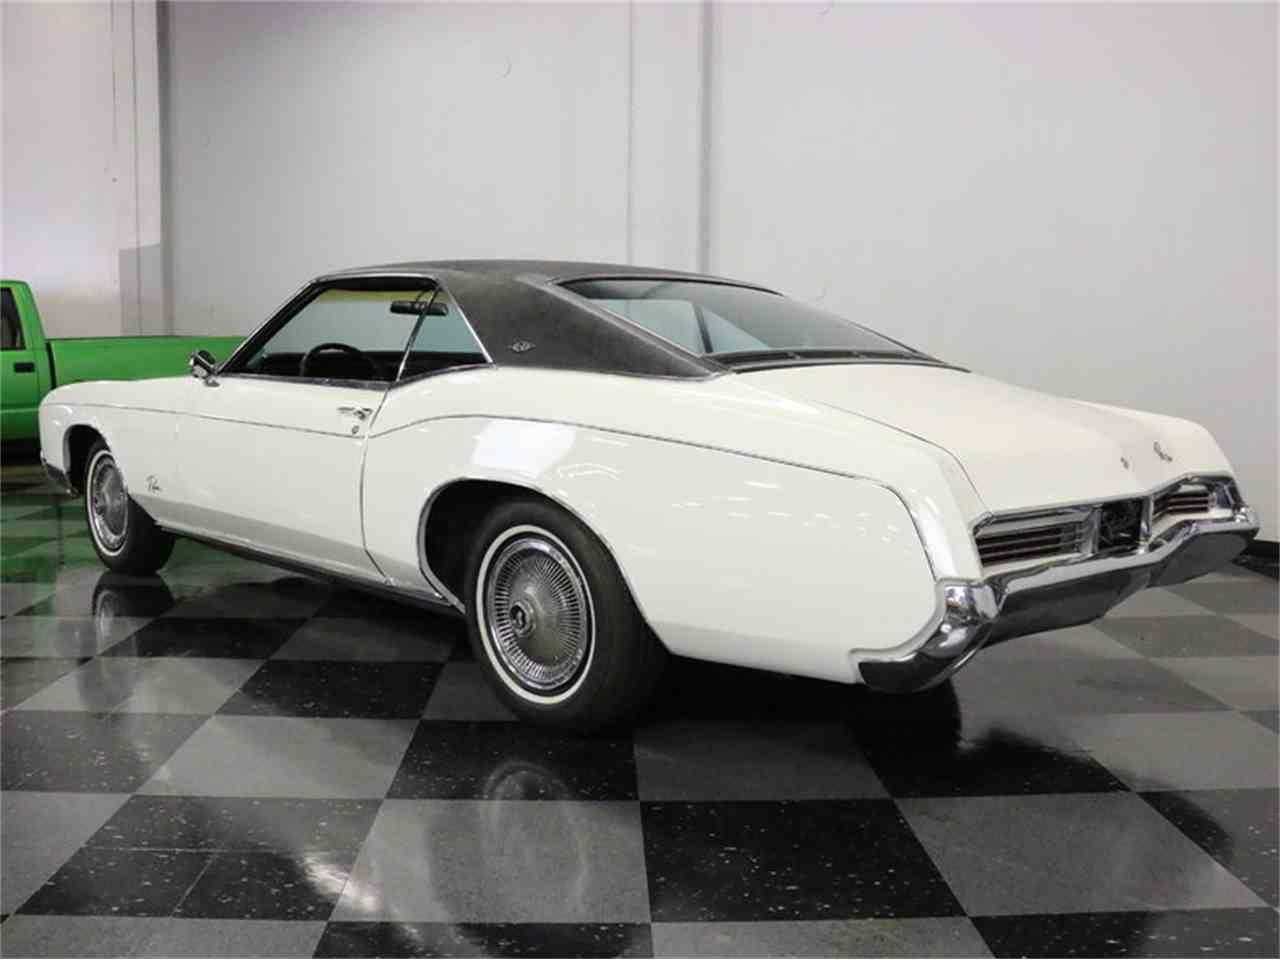 Large Picture of 1967 Buick Riviera located in Ft Worth Texas Offered by Streetside Classics - Dallas / Fort Worth - M5N7